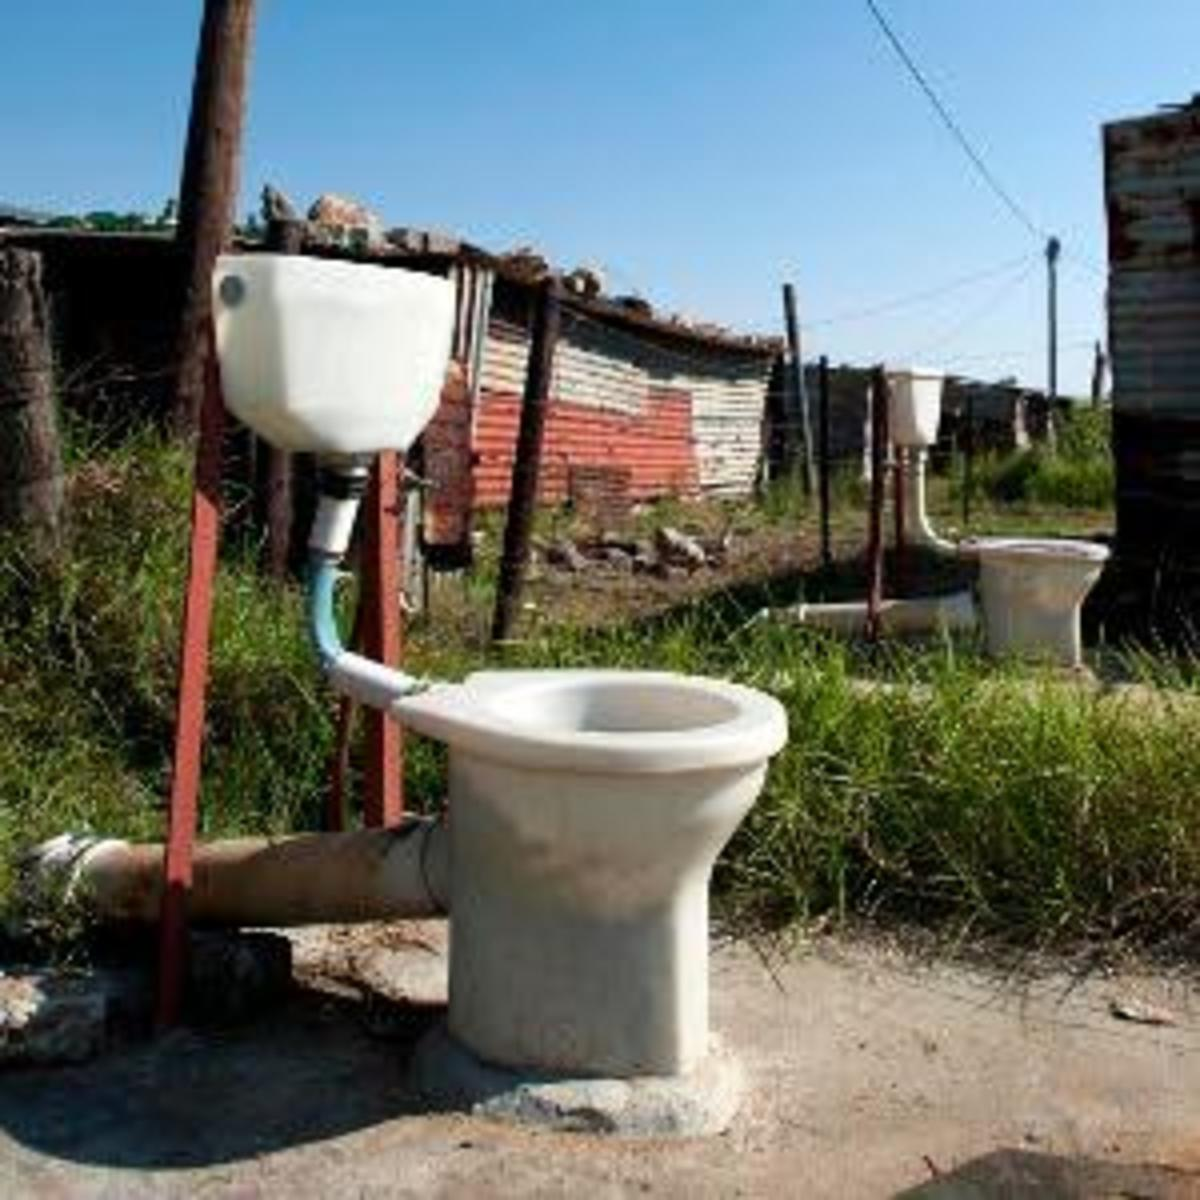 Toilet tenders stink because the people they were built for complain that they were left as seen on this picture. These are the unclosed toilets in Rammulotsi, near Viljoenskroon in tthe Free State, South Africa